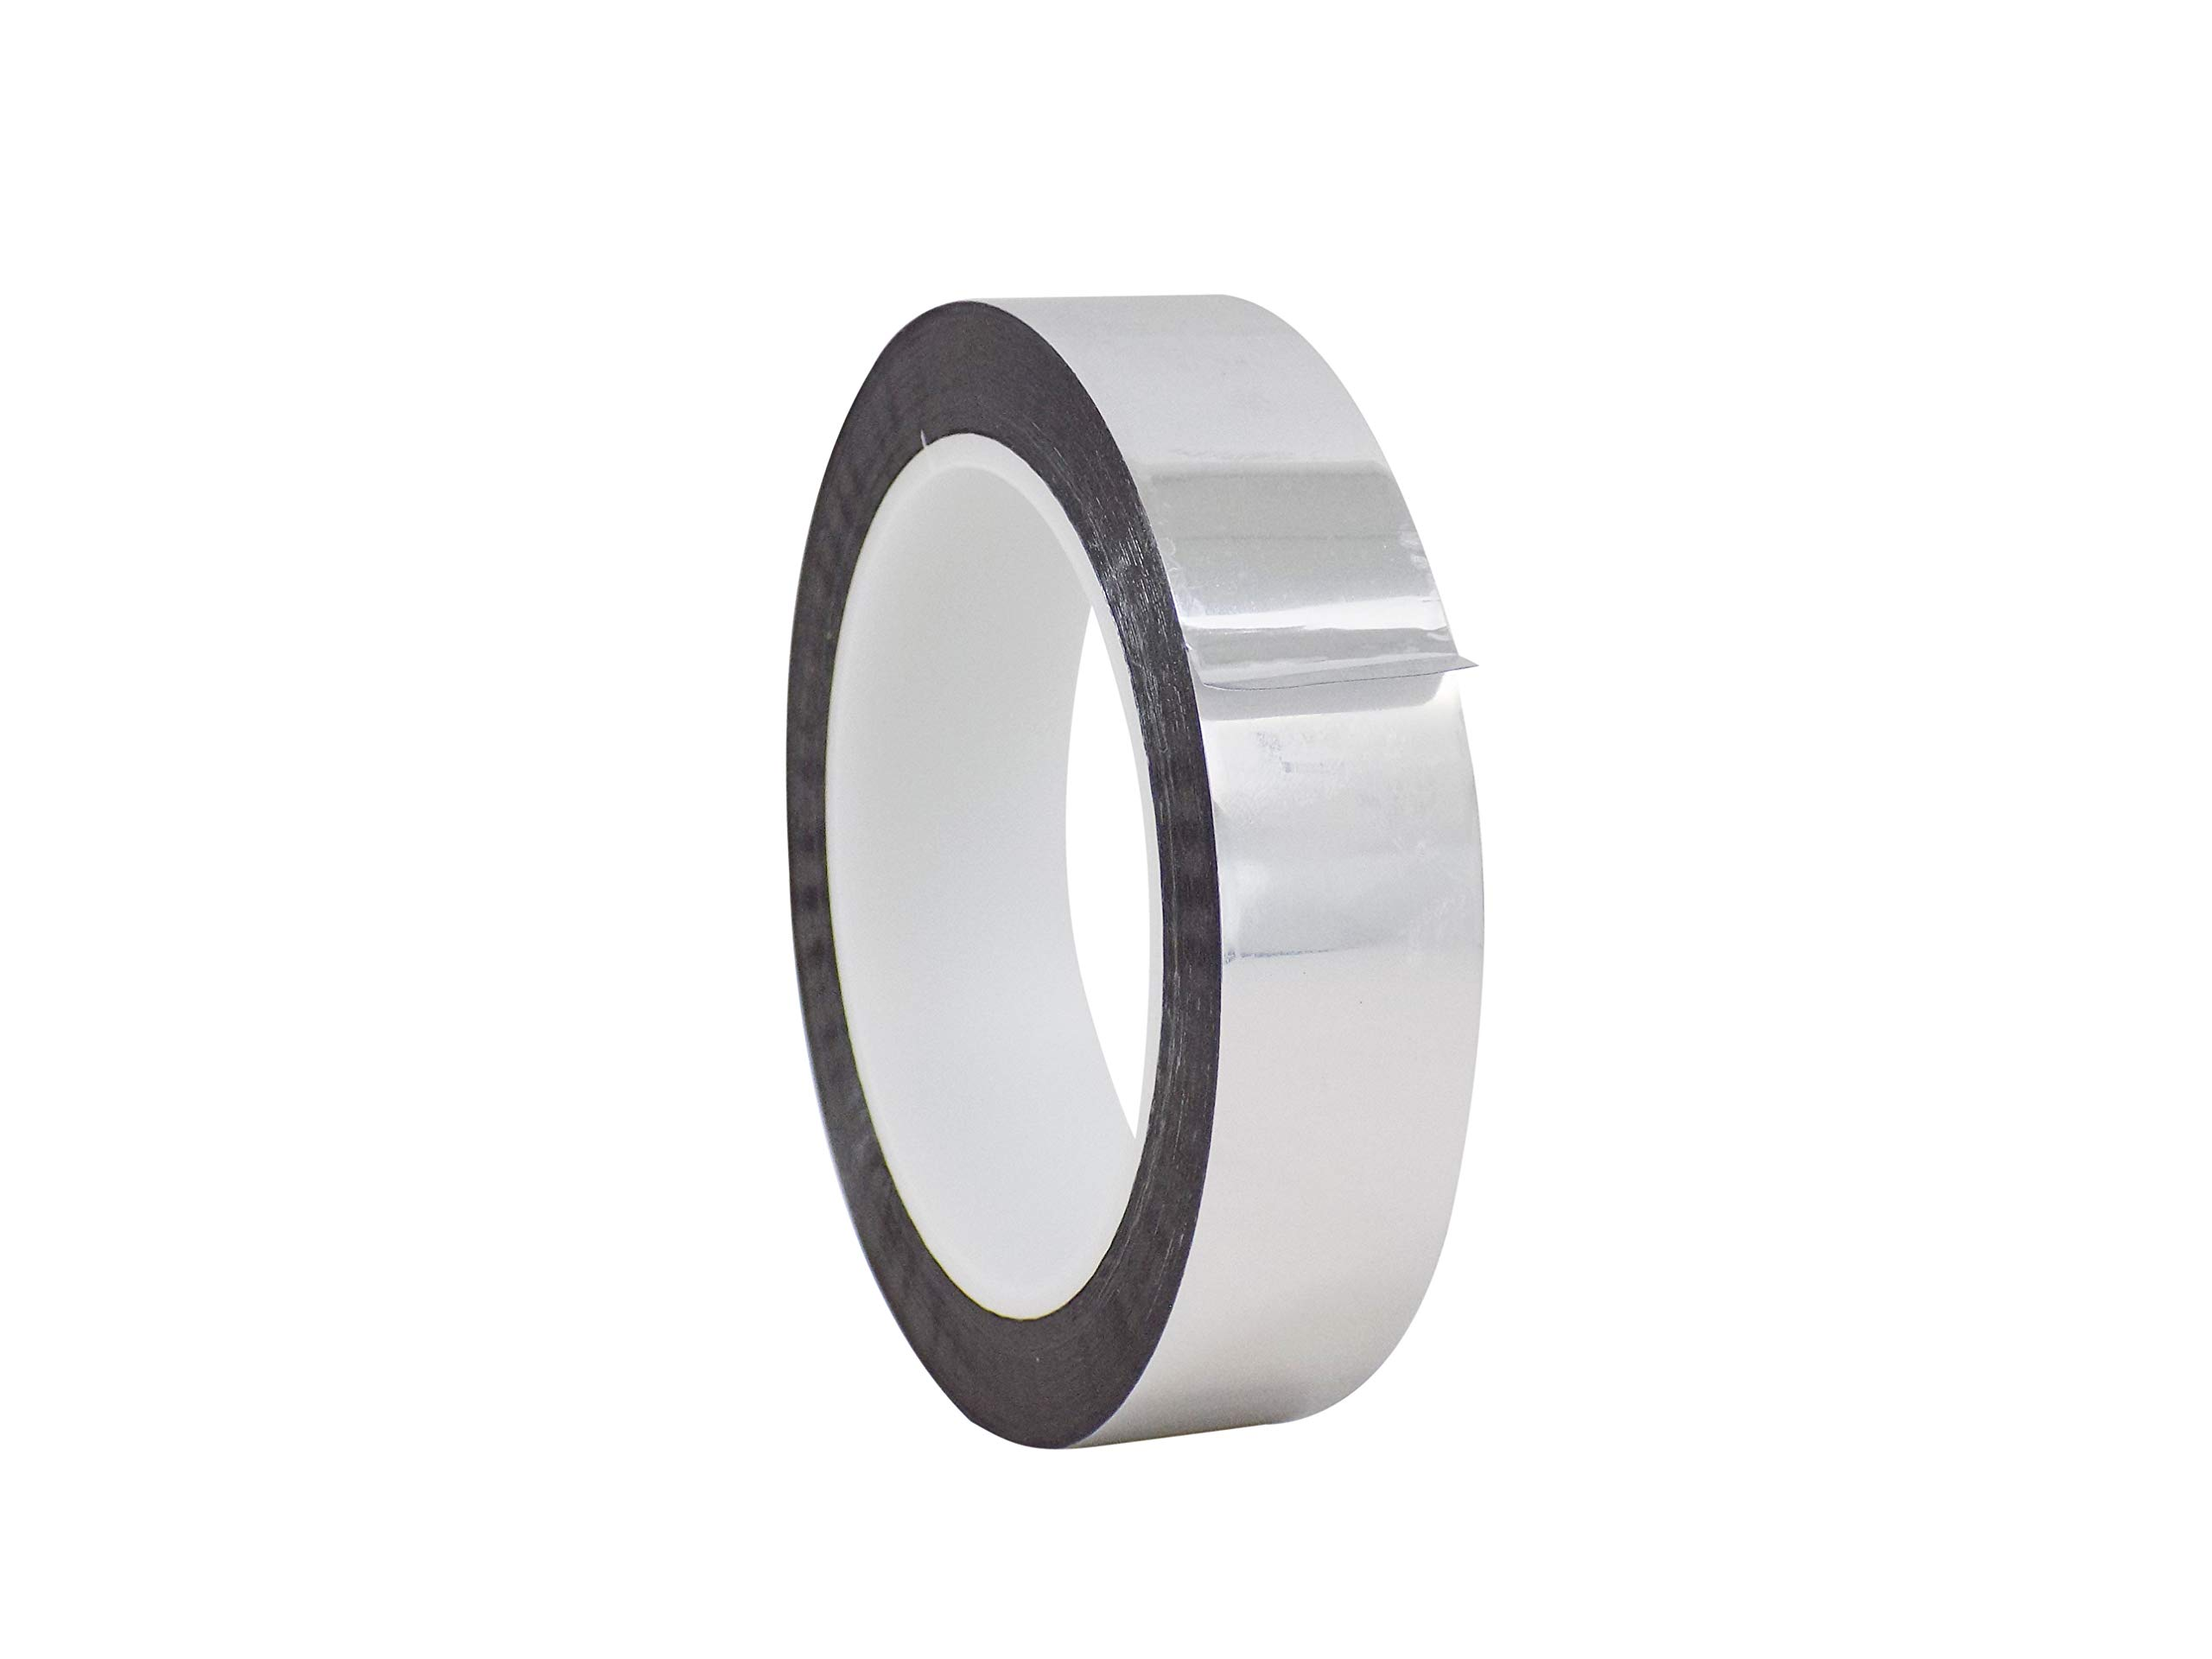 WOD MMYP-1 Silver Metalized Polyester Mylar Film Tape with Acrylic Adhesive (Available in Multiple Colors & Sizes): 1.5 in. x 72 yds. Excellent Chemical and Thermal Stability.